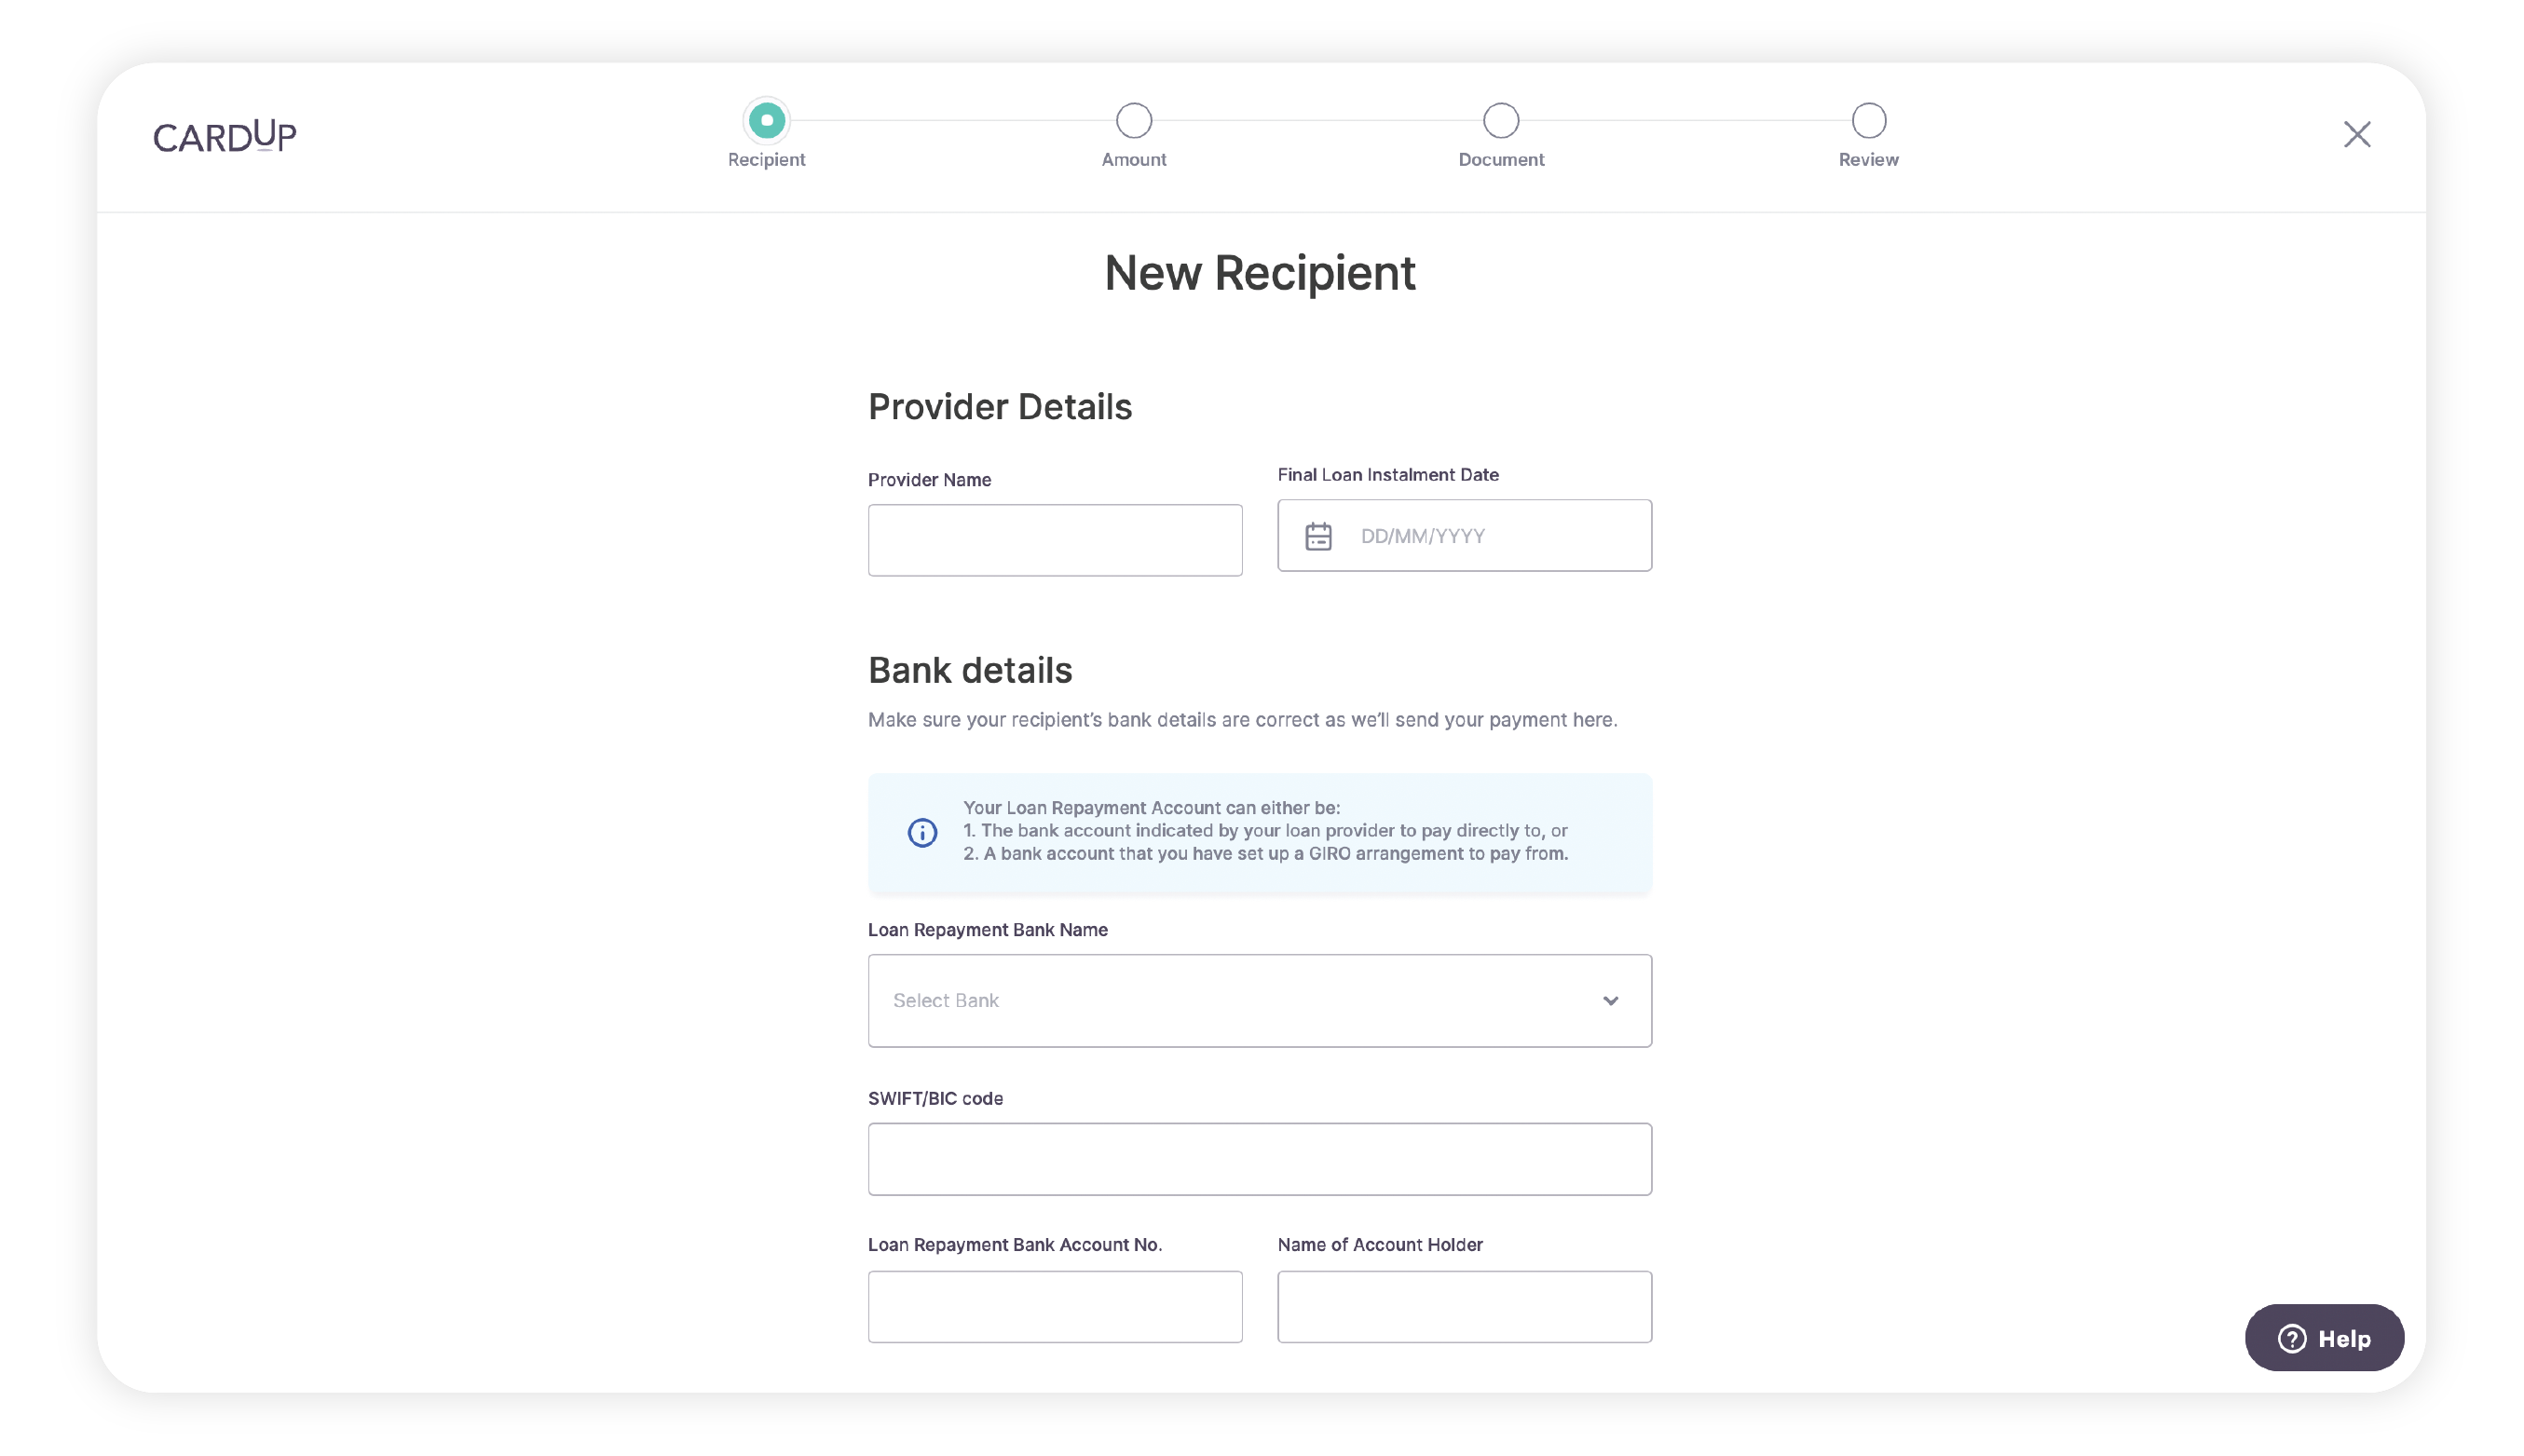 Enter the recipient bank details for the Loan Repayment Account